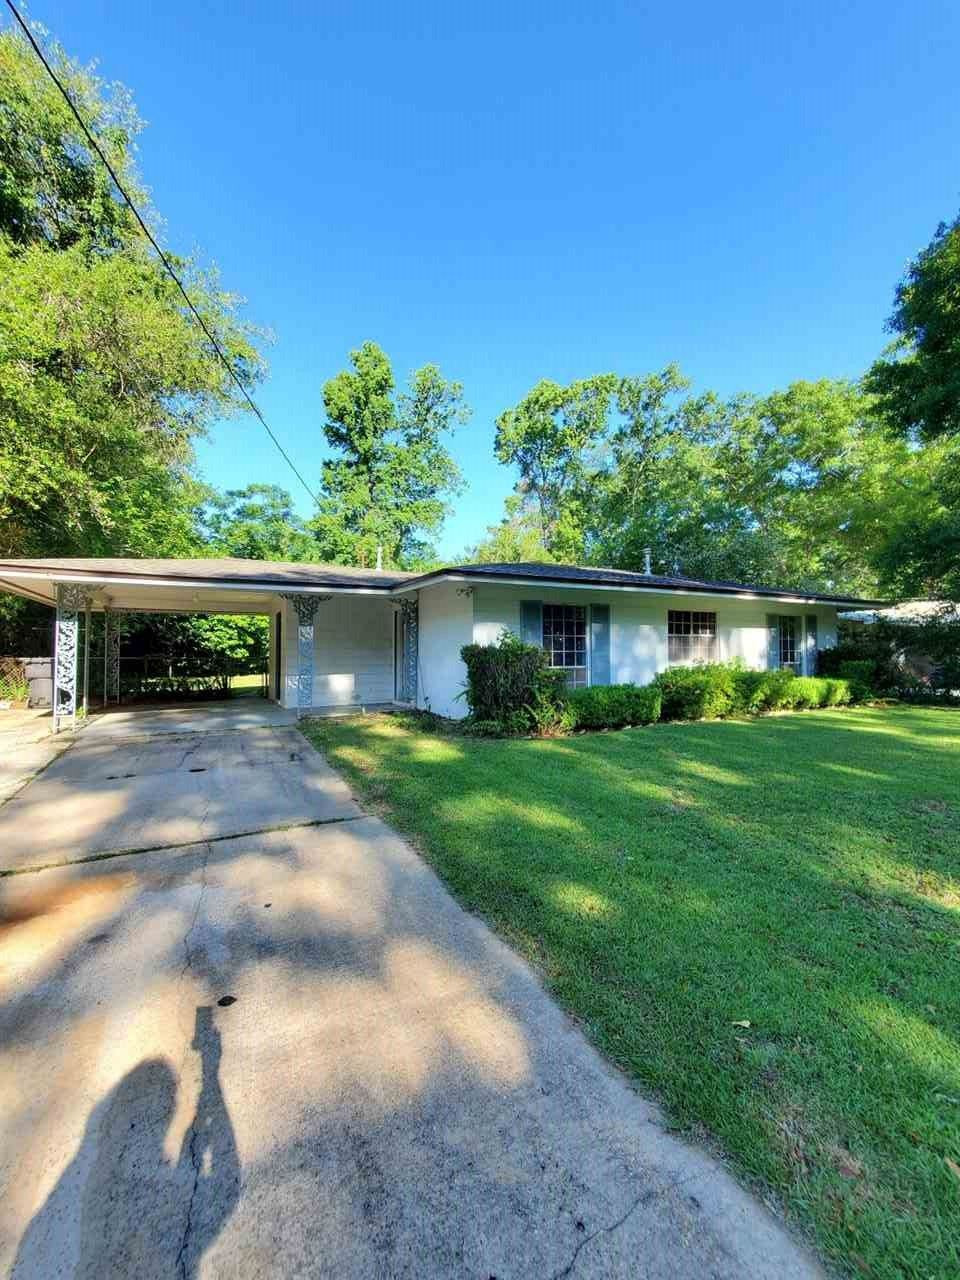 Photo for 2916 Harwood Street, TALLAHASSEE, FL 32301 (MLS # 314472)